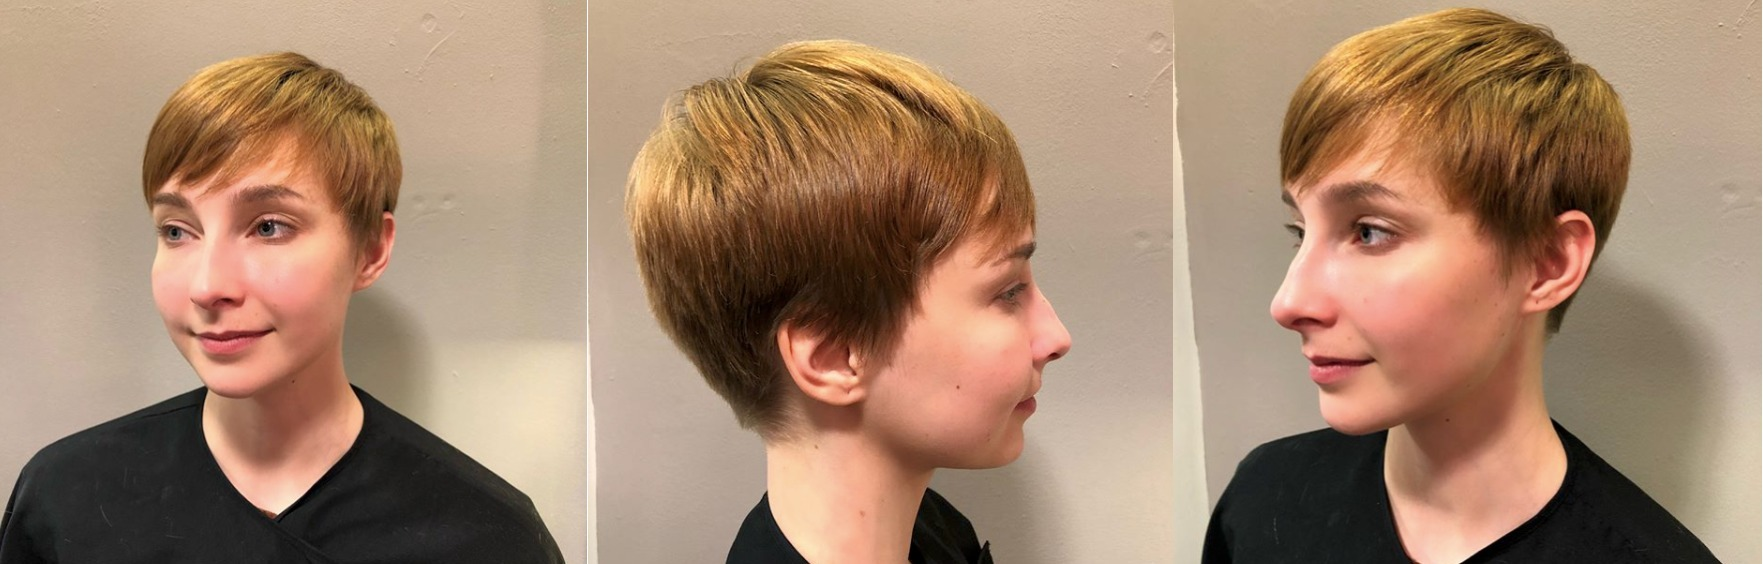 Salon Hairstyles For Short Hair Is Short Hair For Me Glasgow S Westend Hair Salon Explores